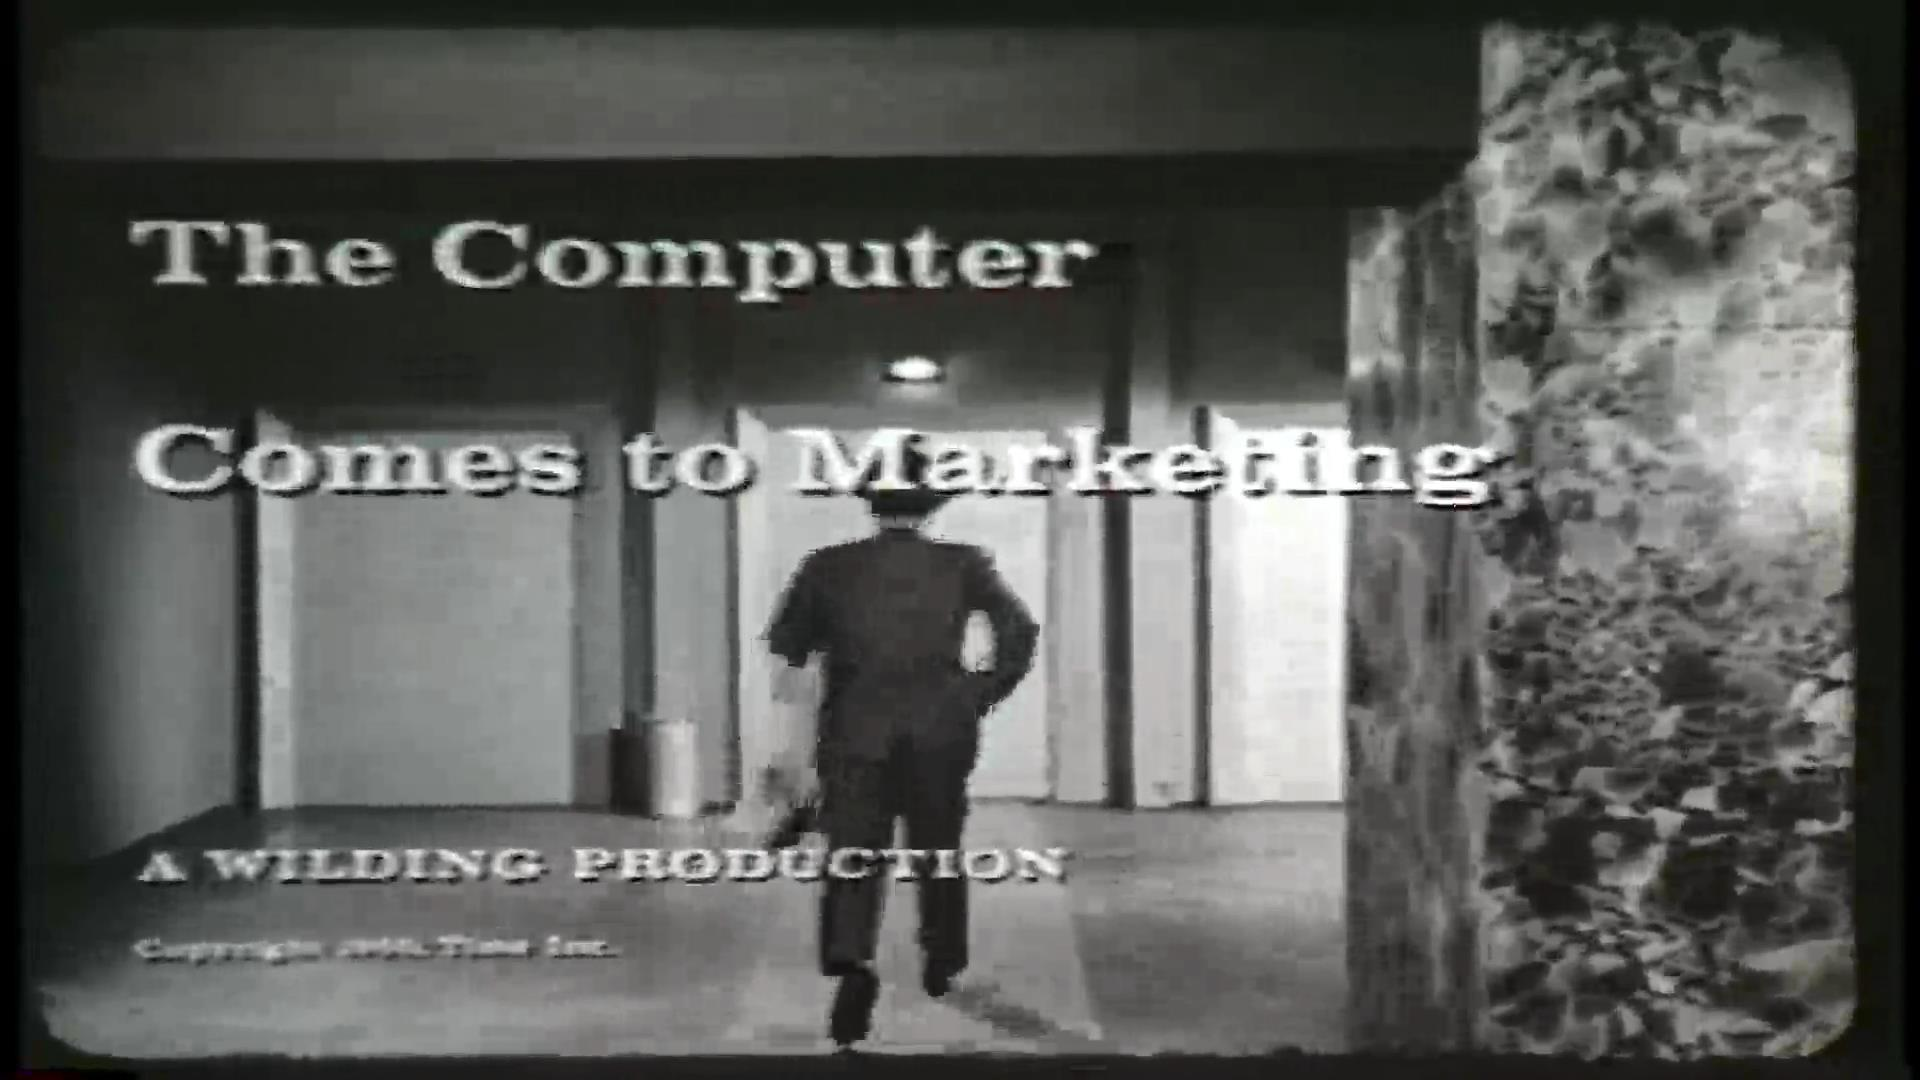 The Computer Comes to Marketing